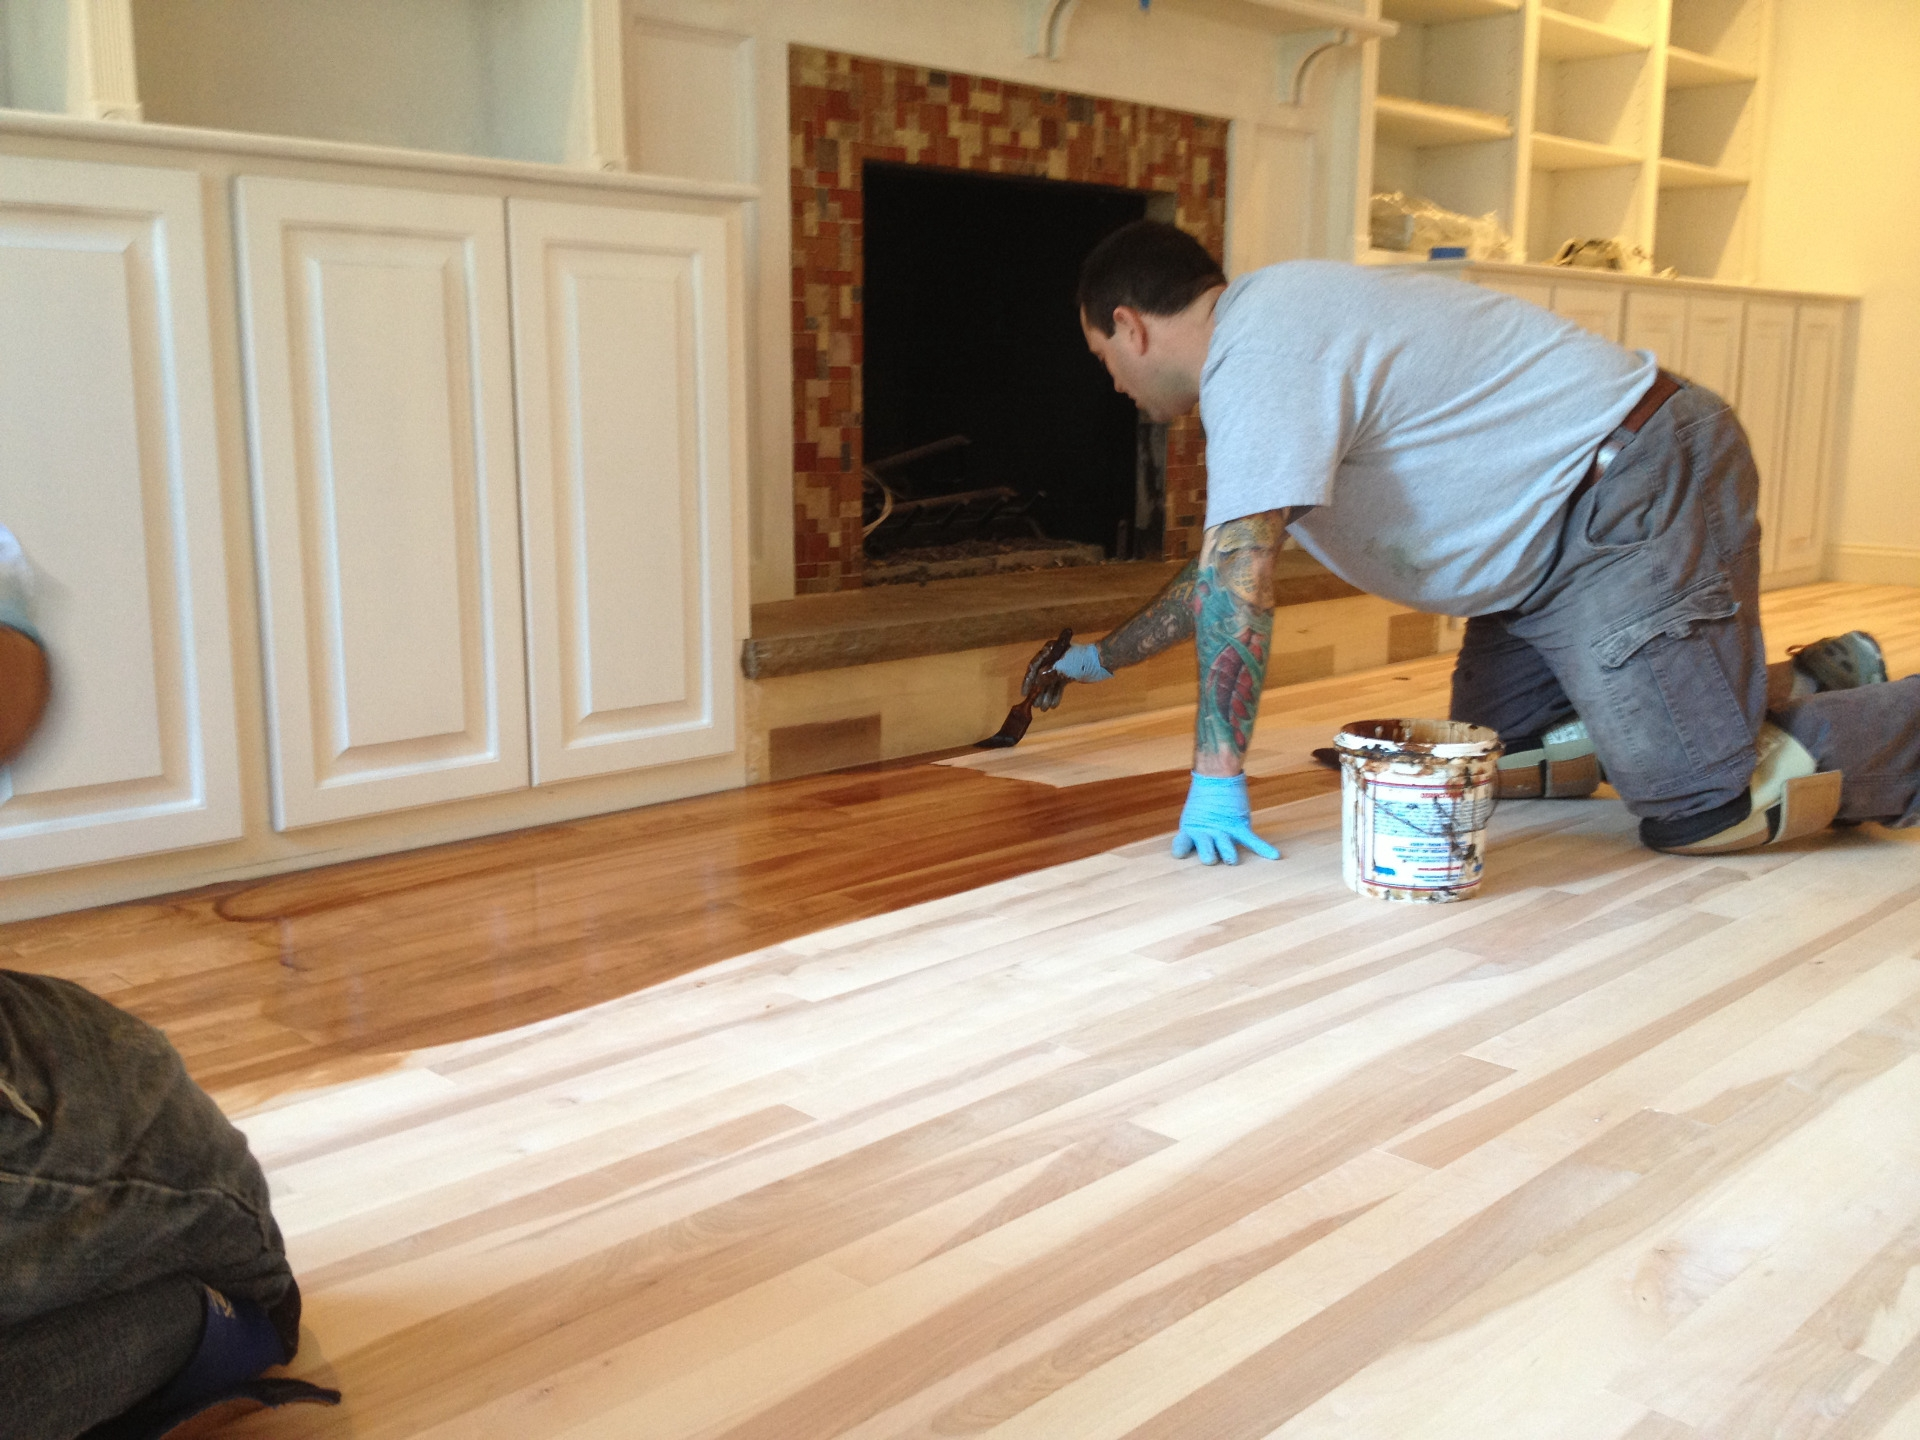 Moving Furniture Over Wood Floors